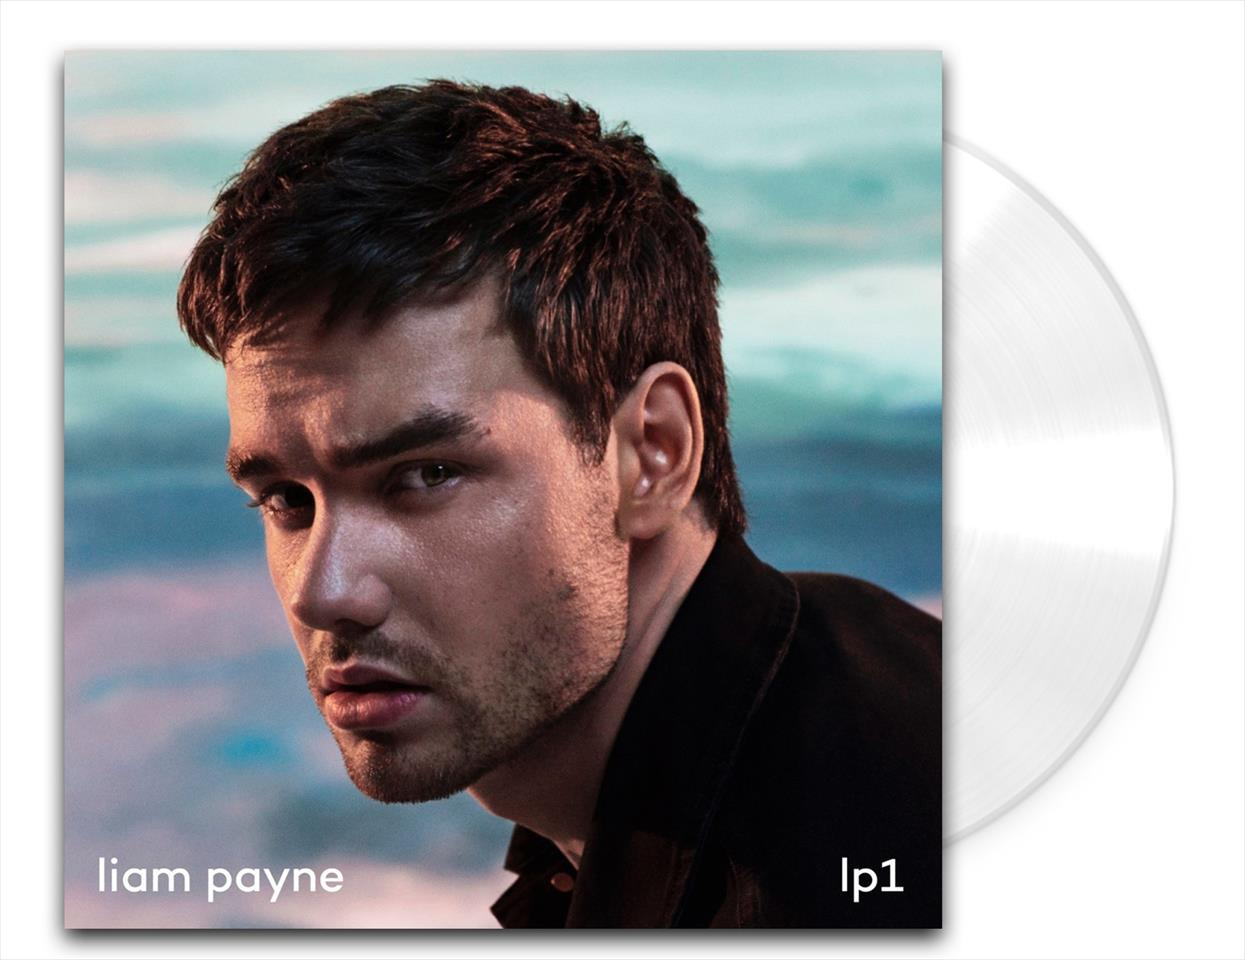 Liam Payne - LP1 Limited LP (Urban Outfitters)